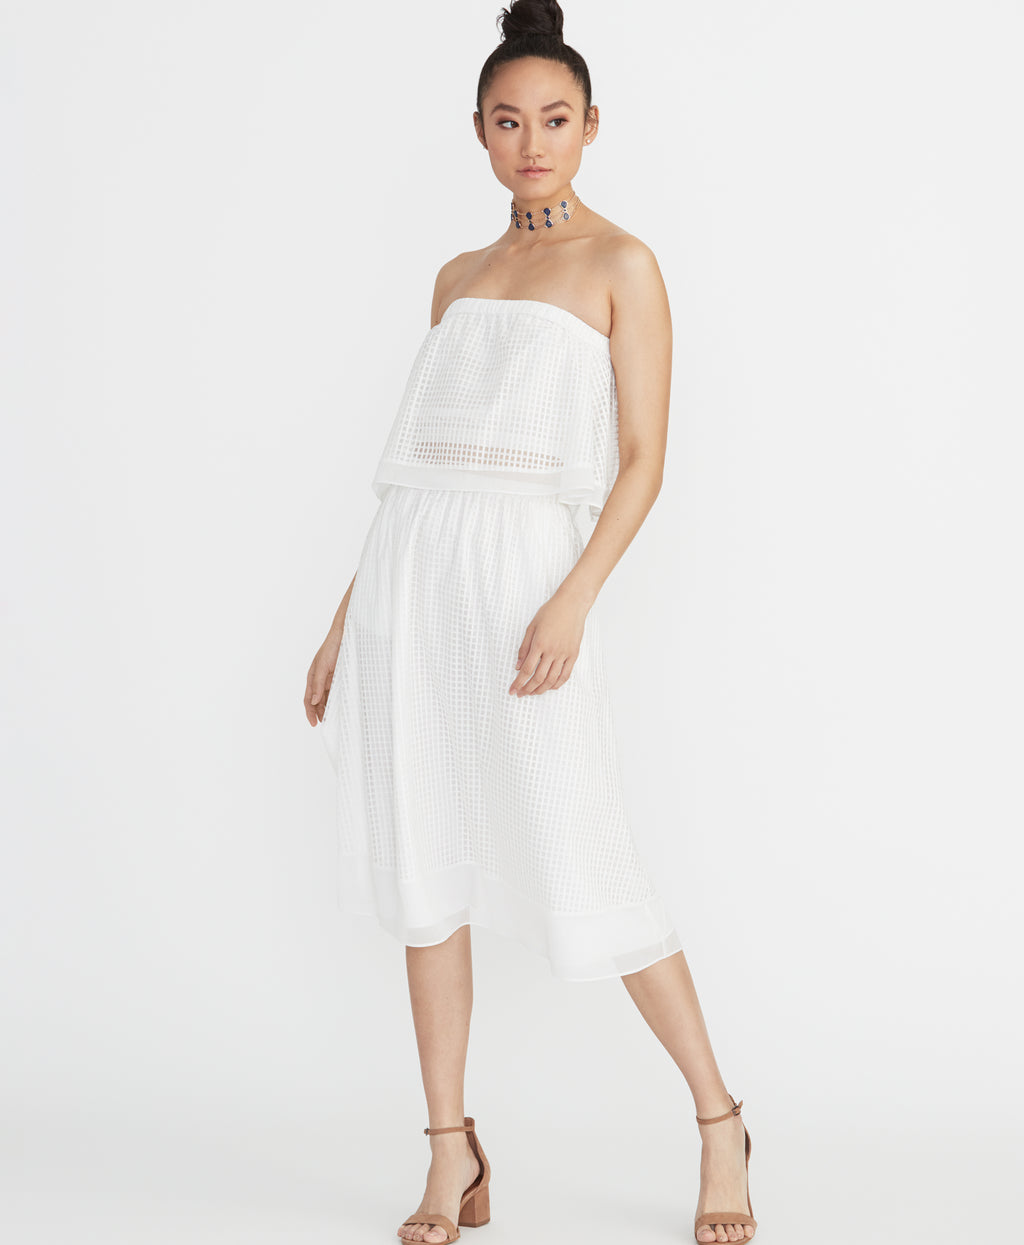 Ilia Grid Skirt | Ilia Grid Skirt